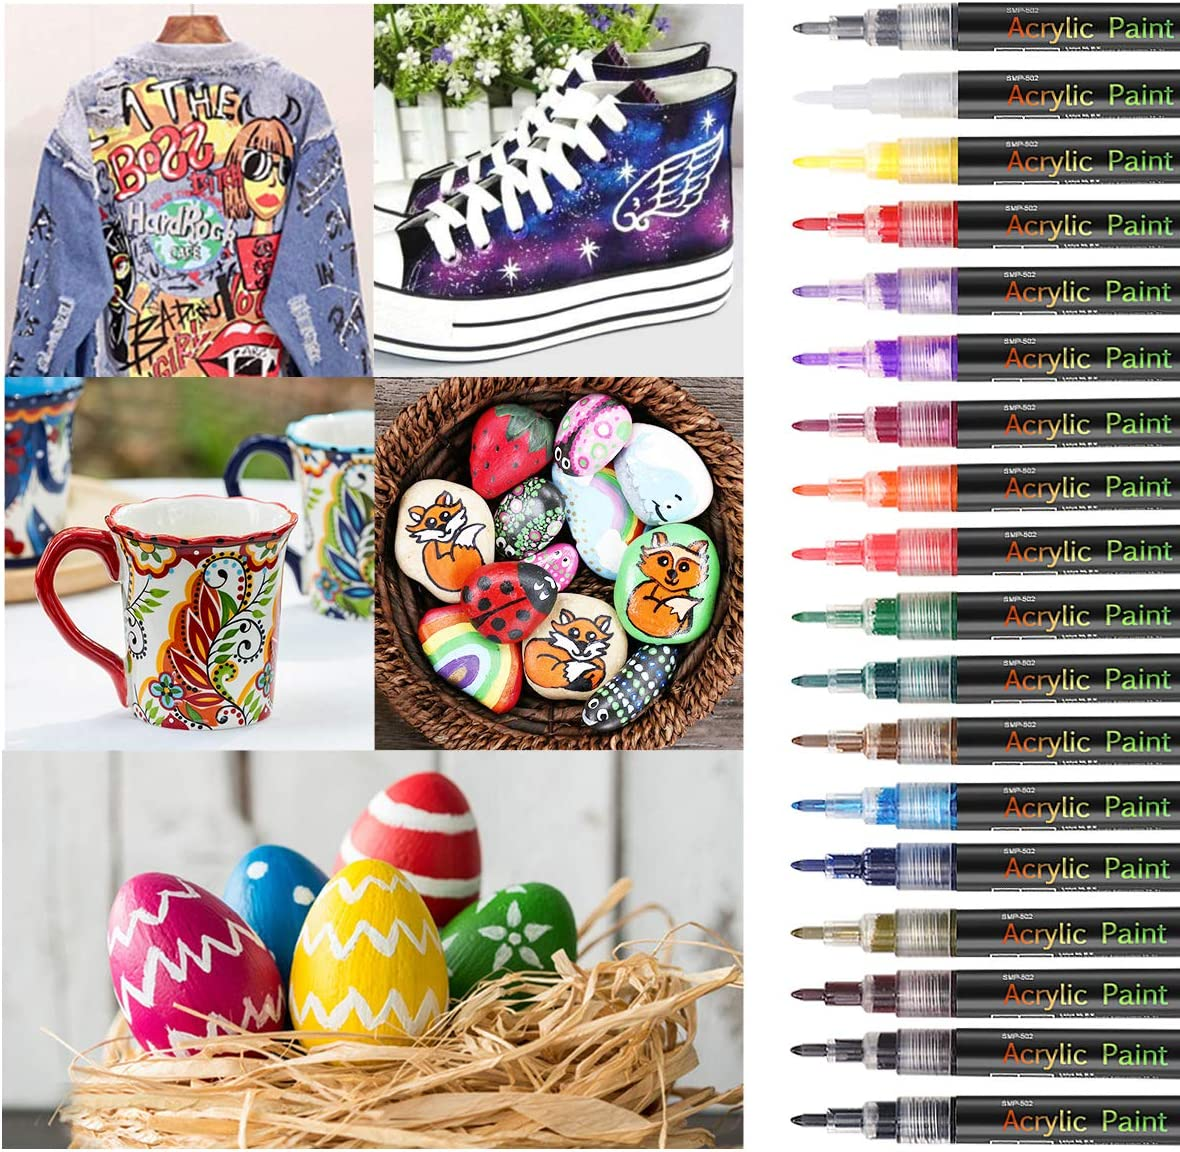 18 Colors Acrylic Paint Pens Set for Rock Painting,Sawake 0.7mm Extra Fine Tip Craft Paint Markers Set,DIY Craft Making Supplies,paint for kids,Quick-Dry,for Rocks Painting Ceramic,Glass,Wood